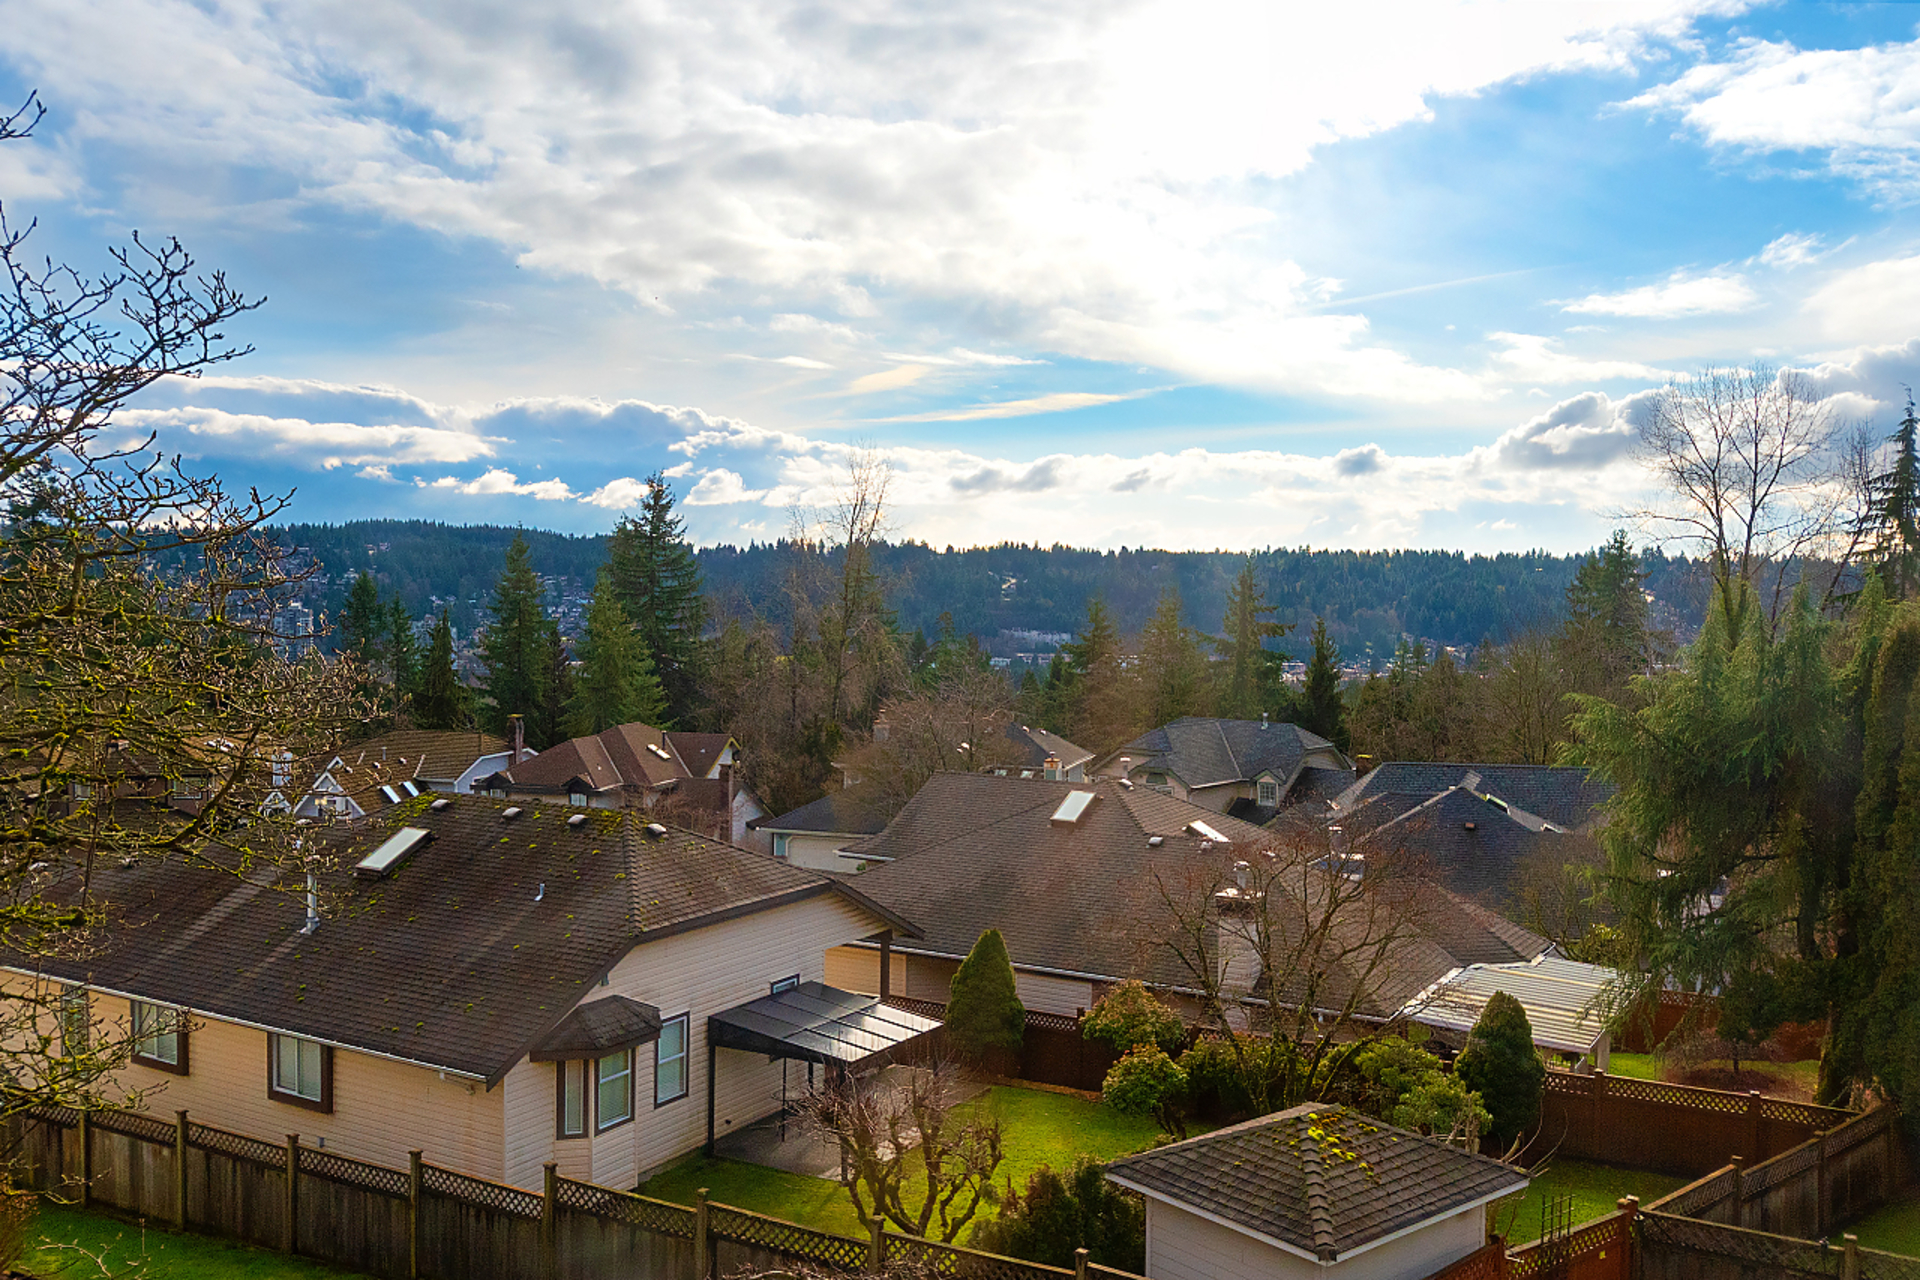 027 at 18 Parkwood Place, Heritage Mountain, Port Moody